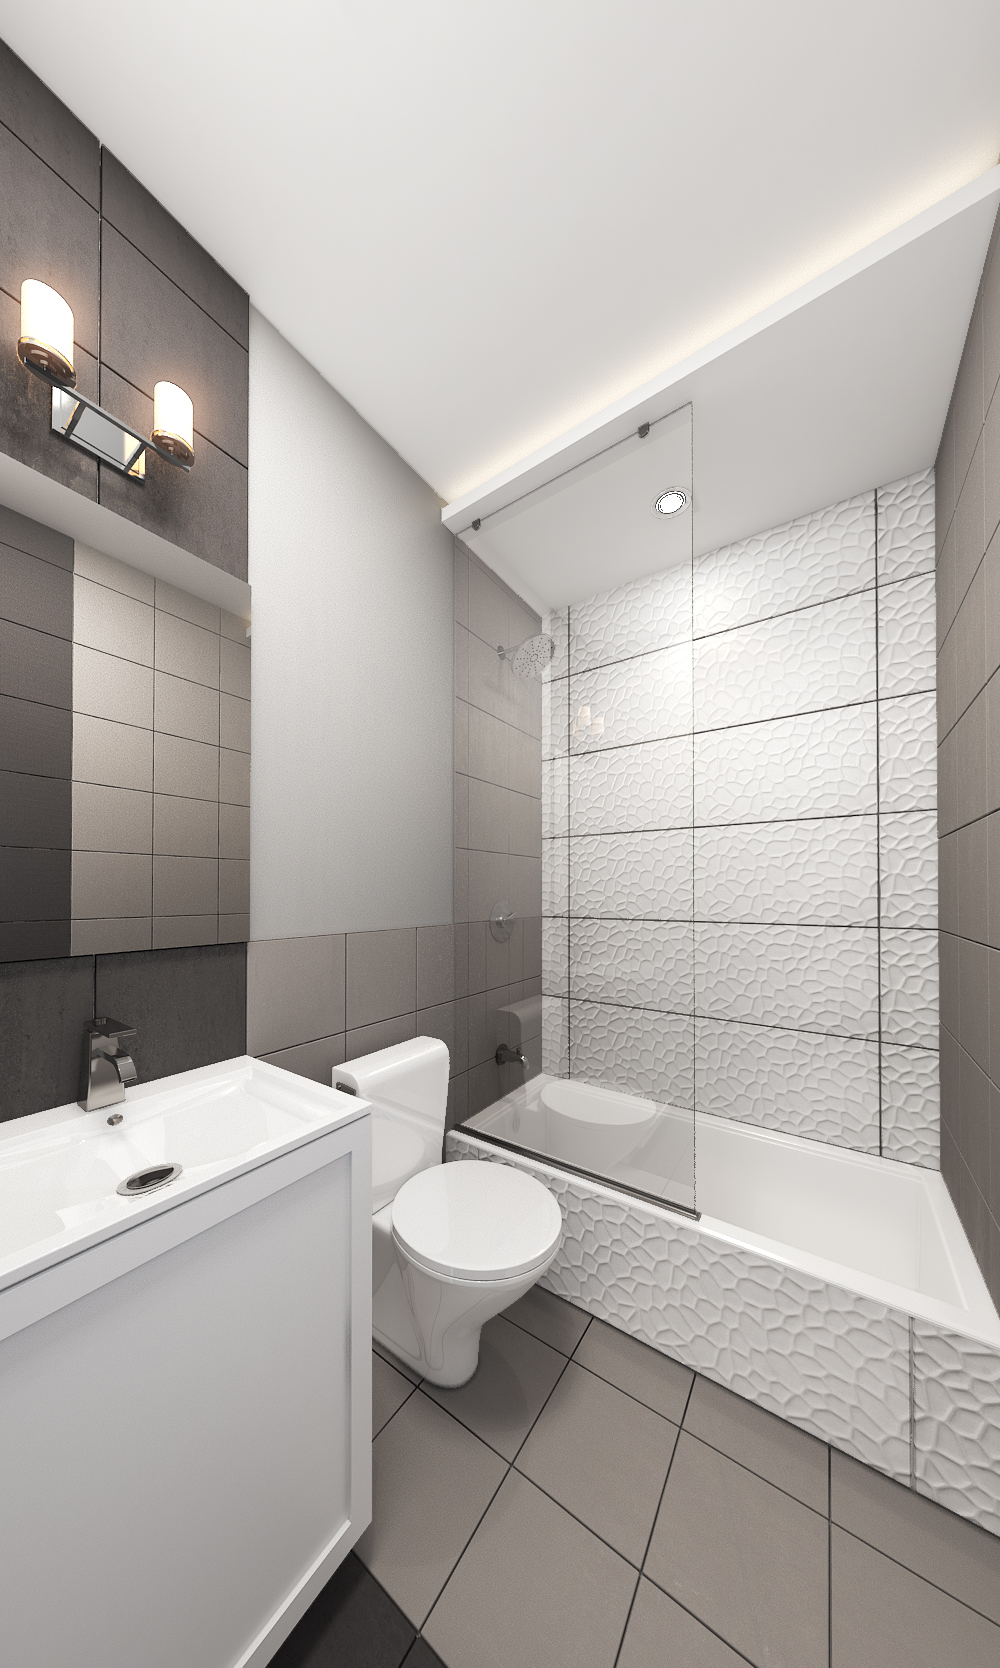 Bathroom Final Rendering 2.17.15.jpg